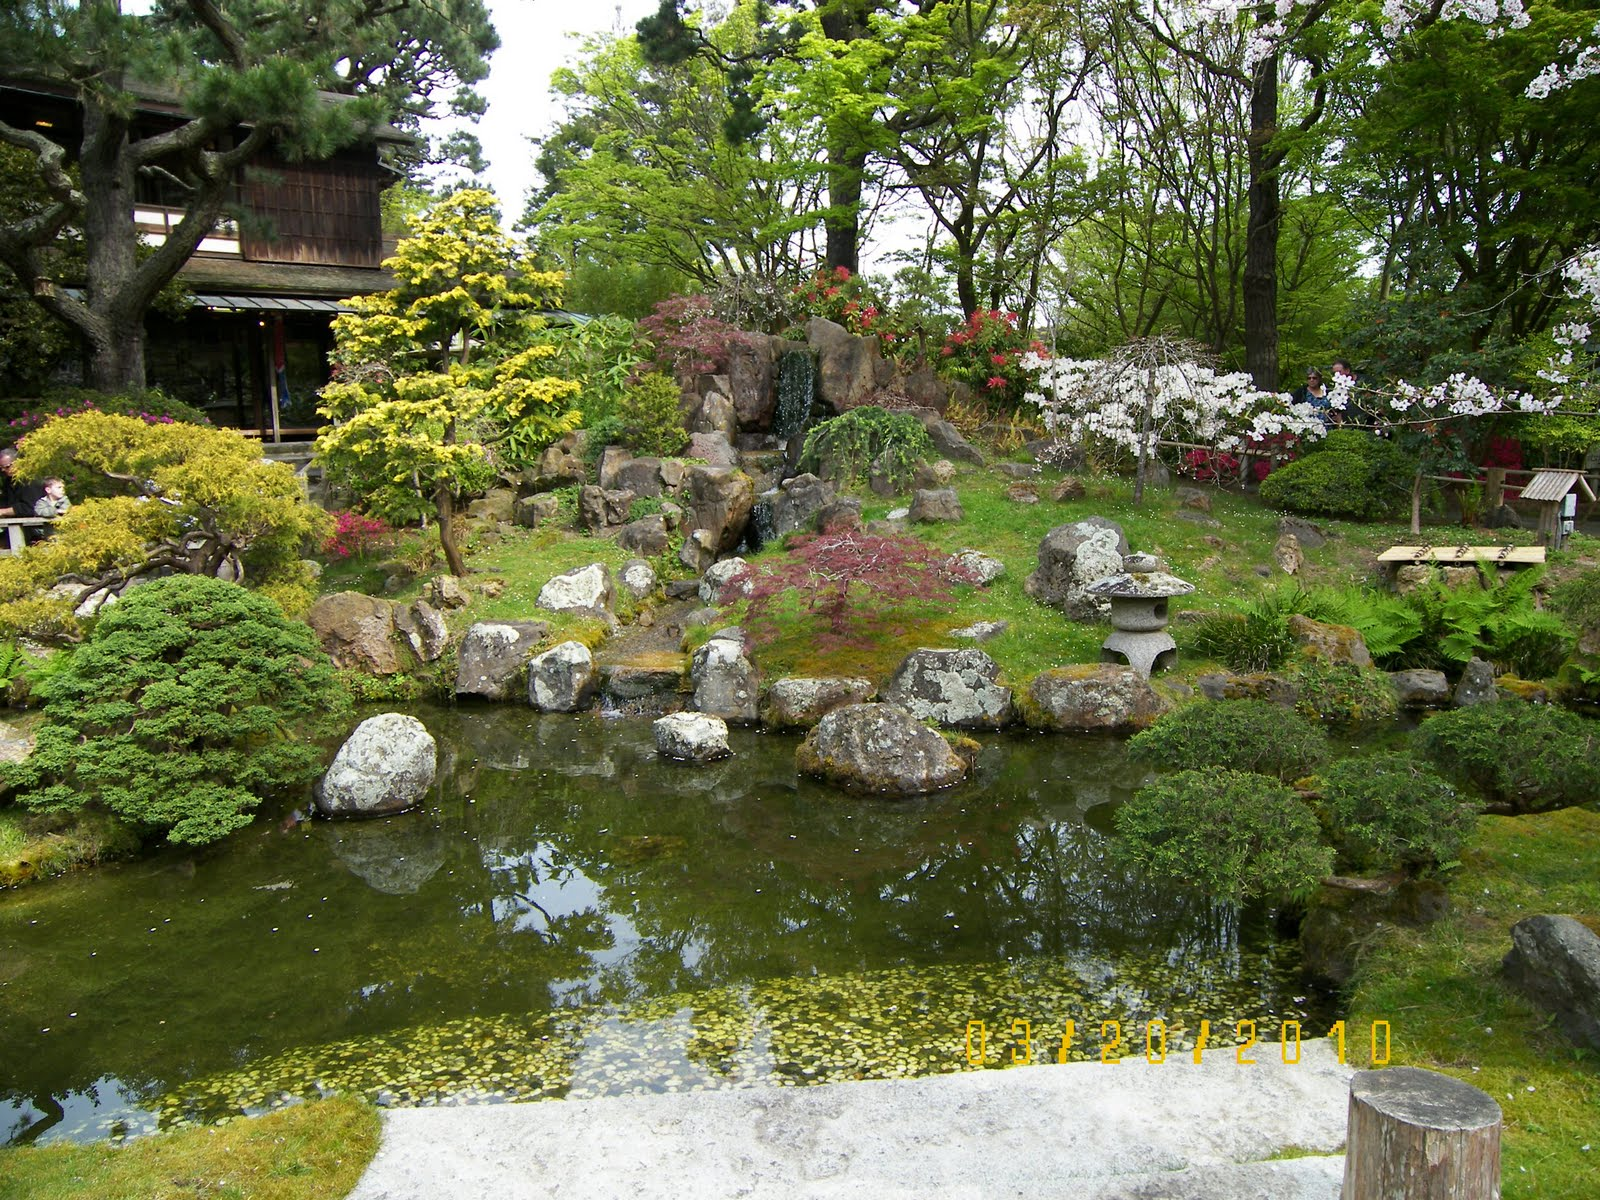 Japanese Garden With Koi Pond Of My Koi Pond 2010 Visited Sf Japanese Garden